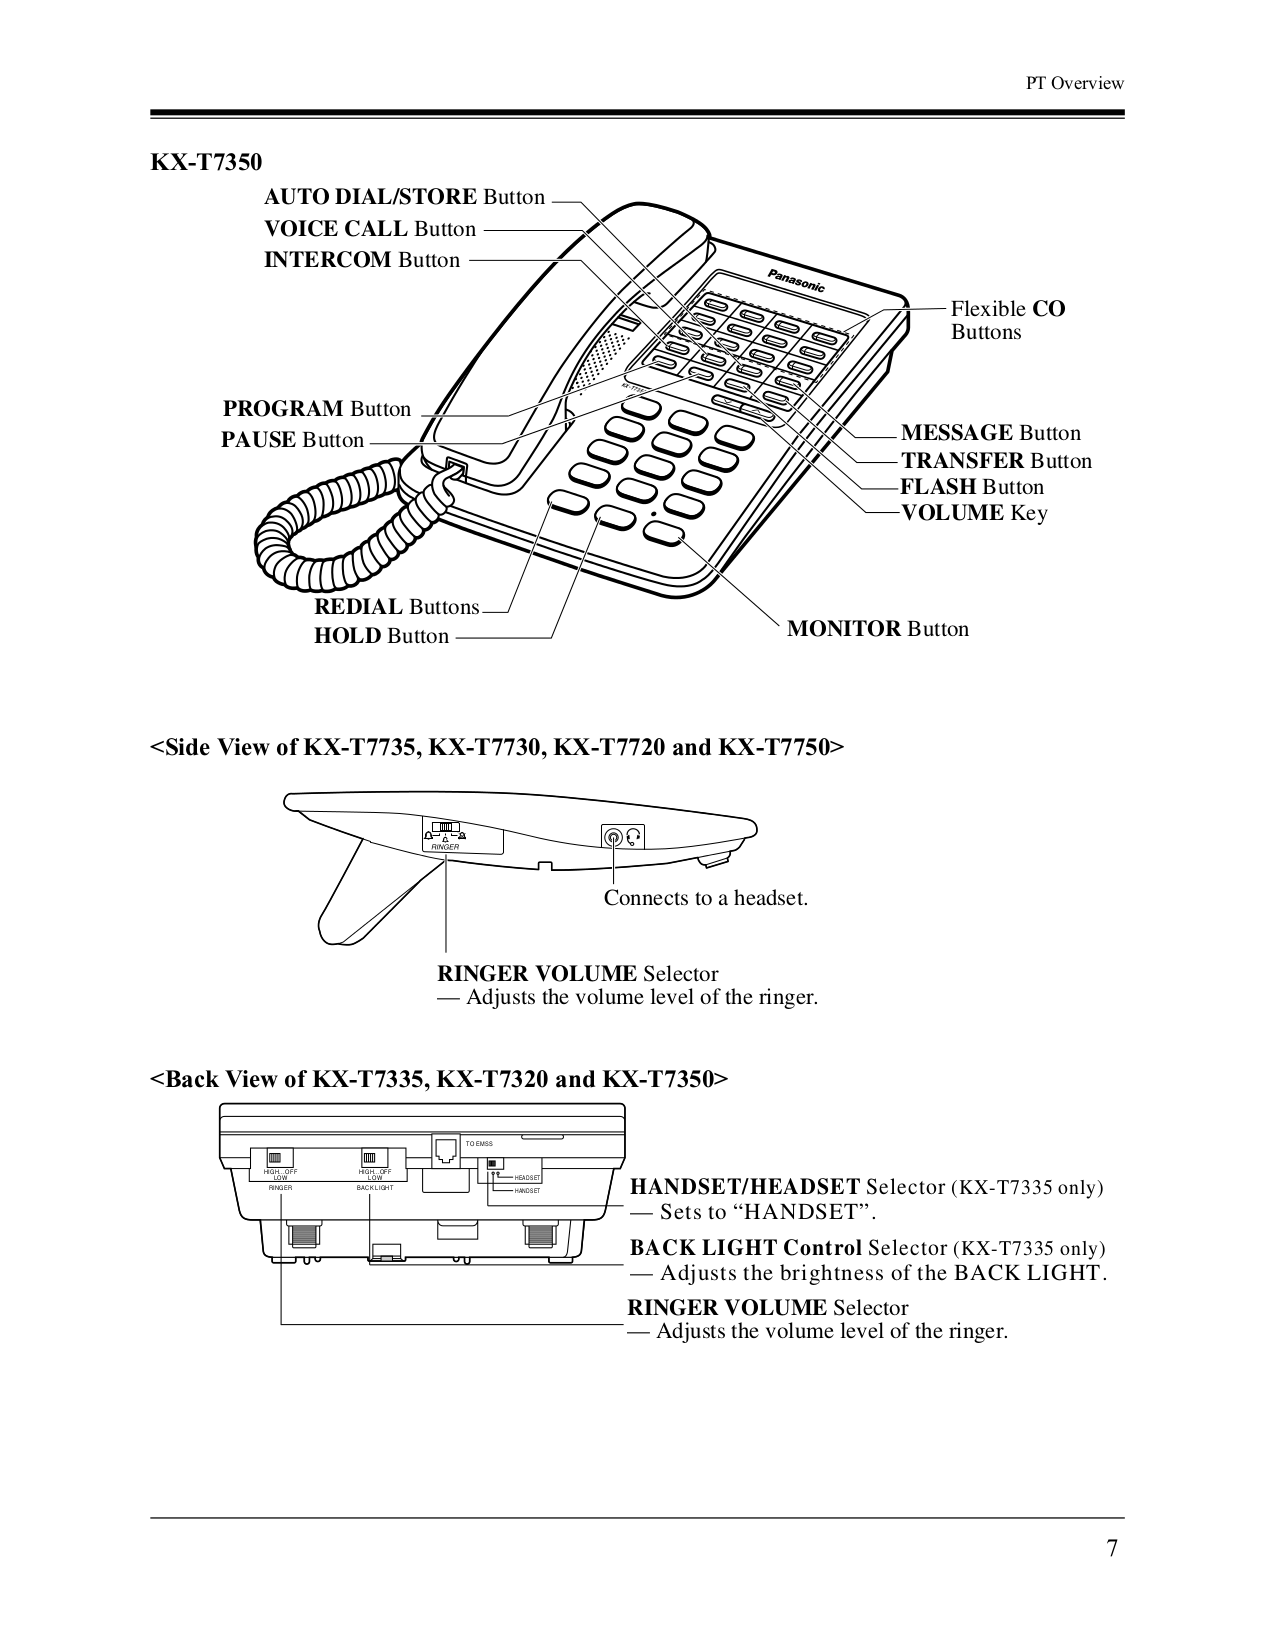 PDF manual for Panasonic Telephone KX-T7730